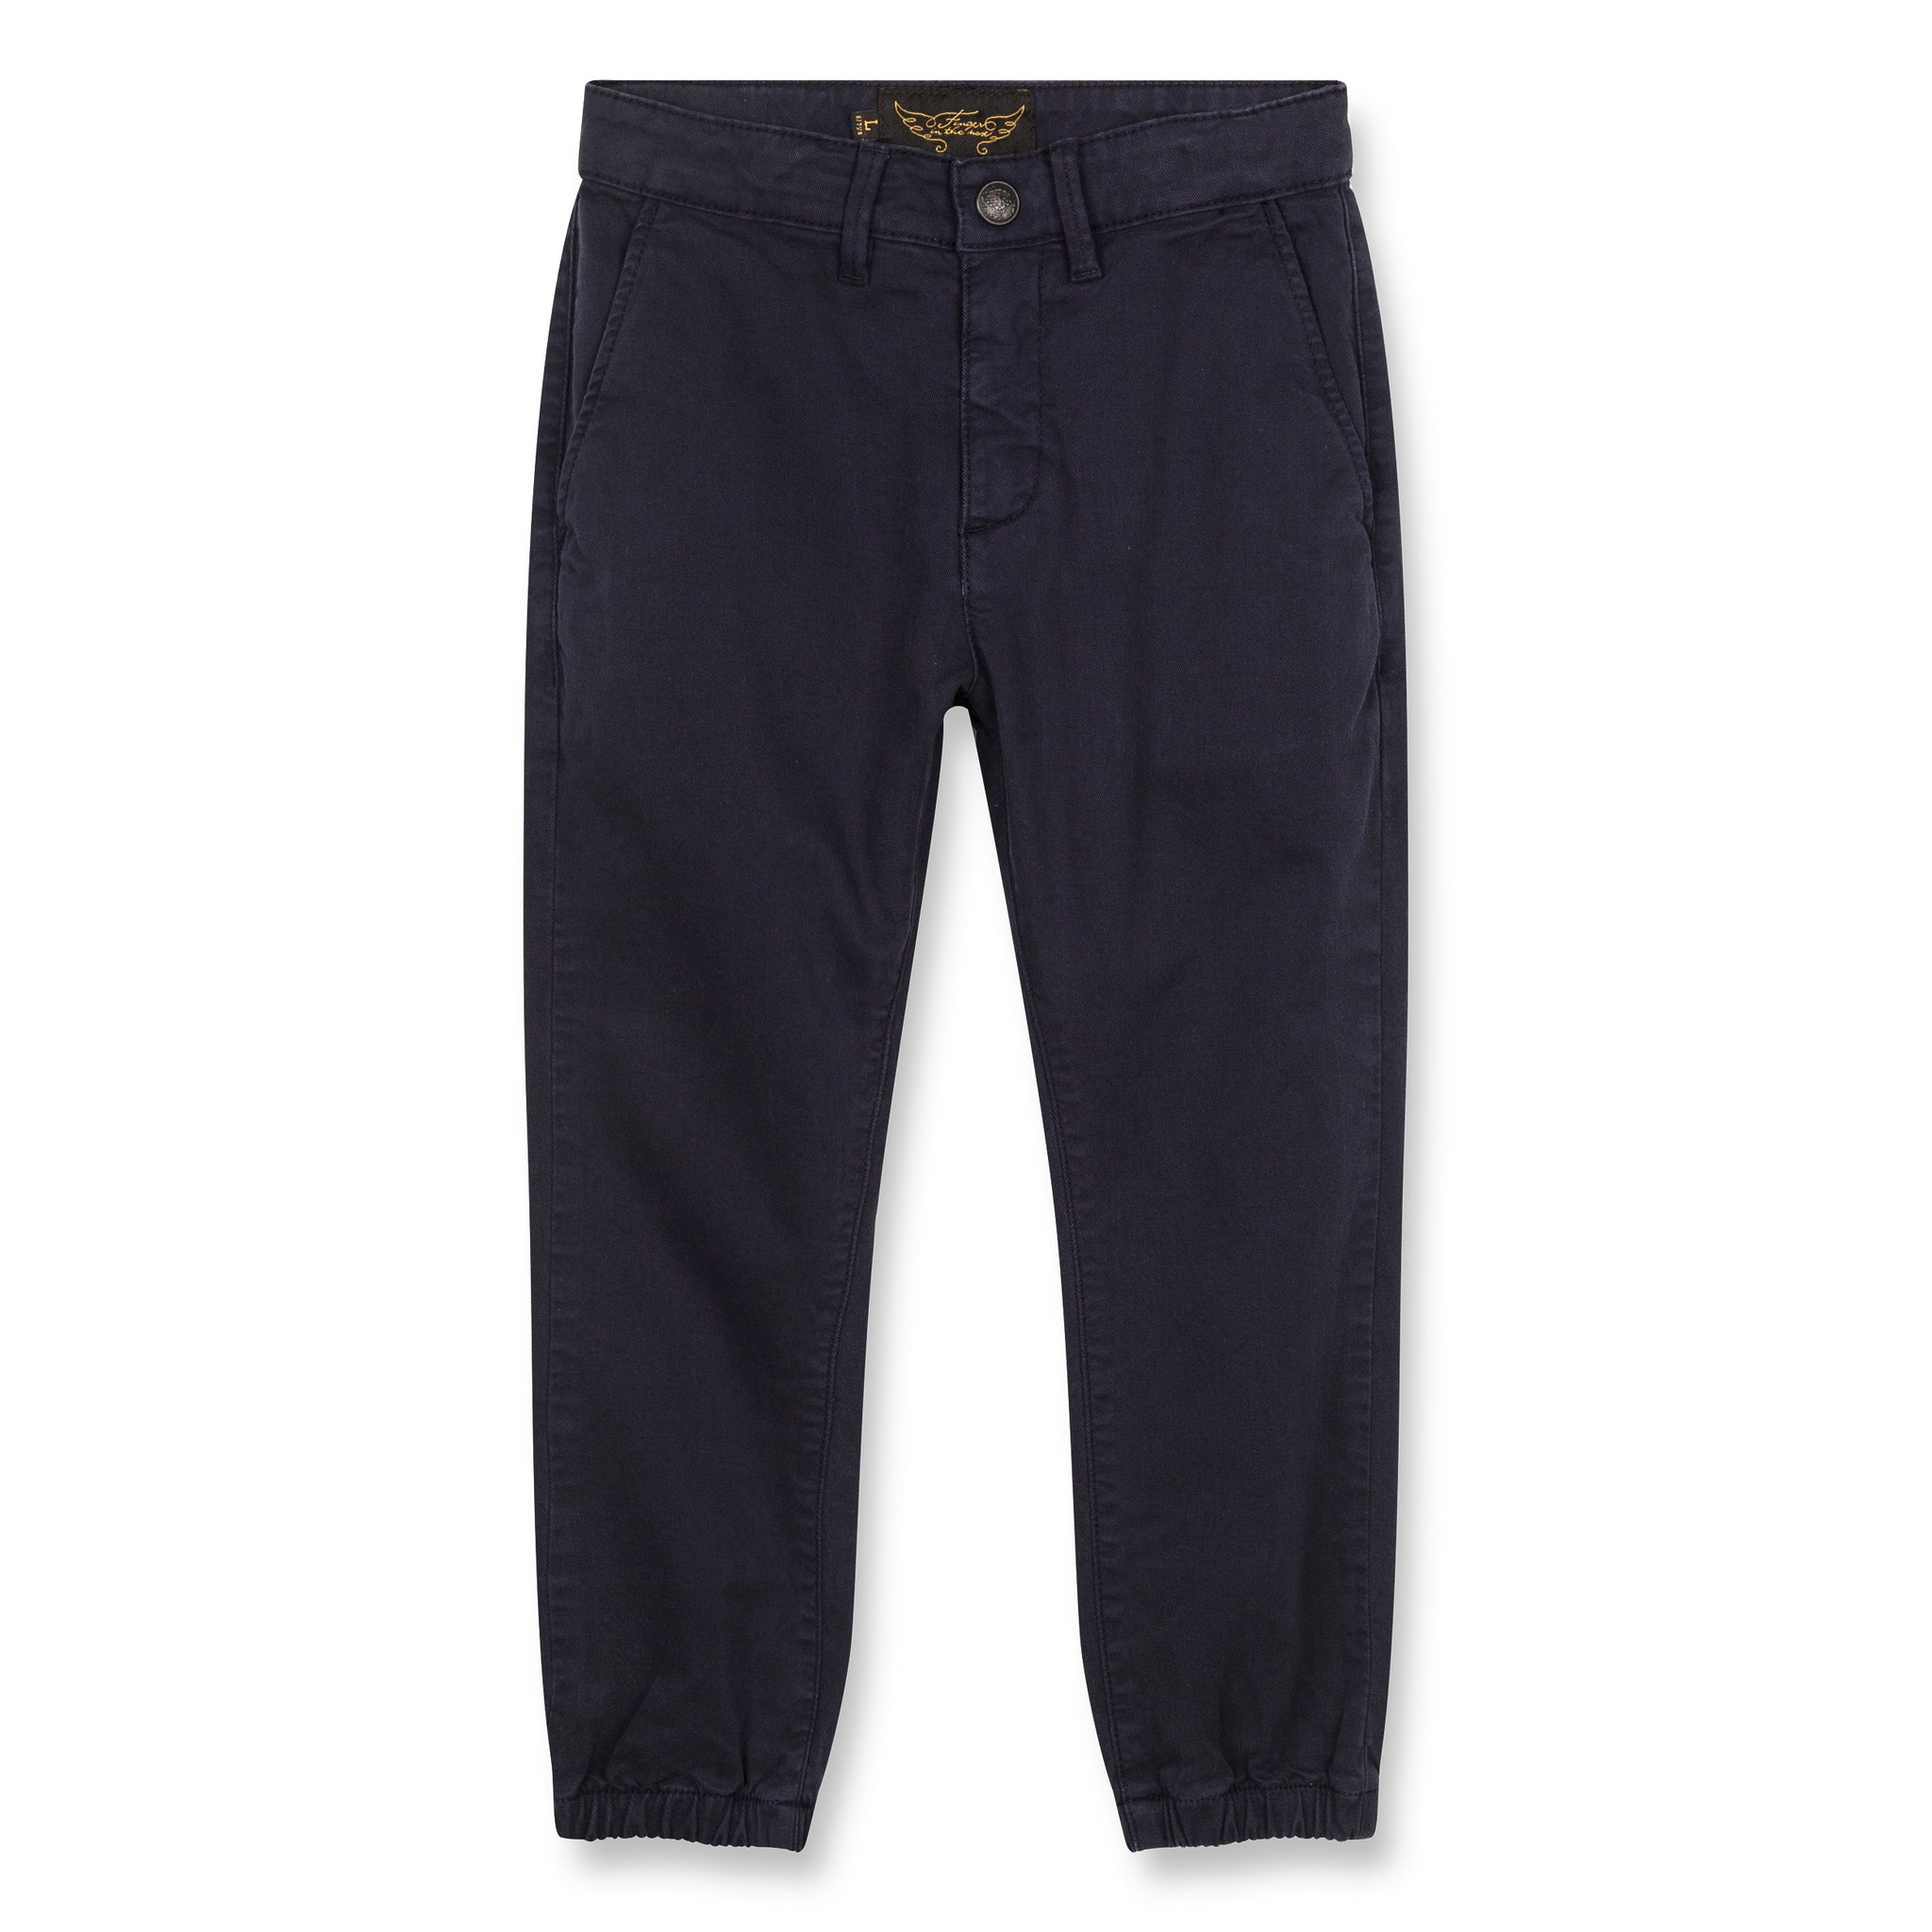 SKATER Super Navy - Elasticed Bottom Chino Fit Pants 1